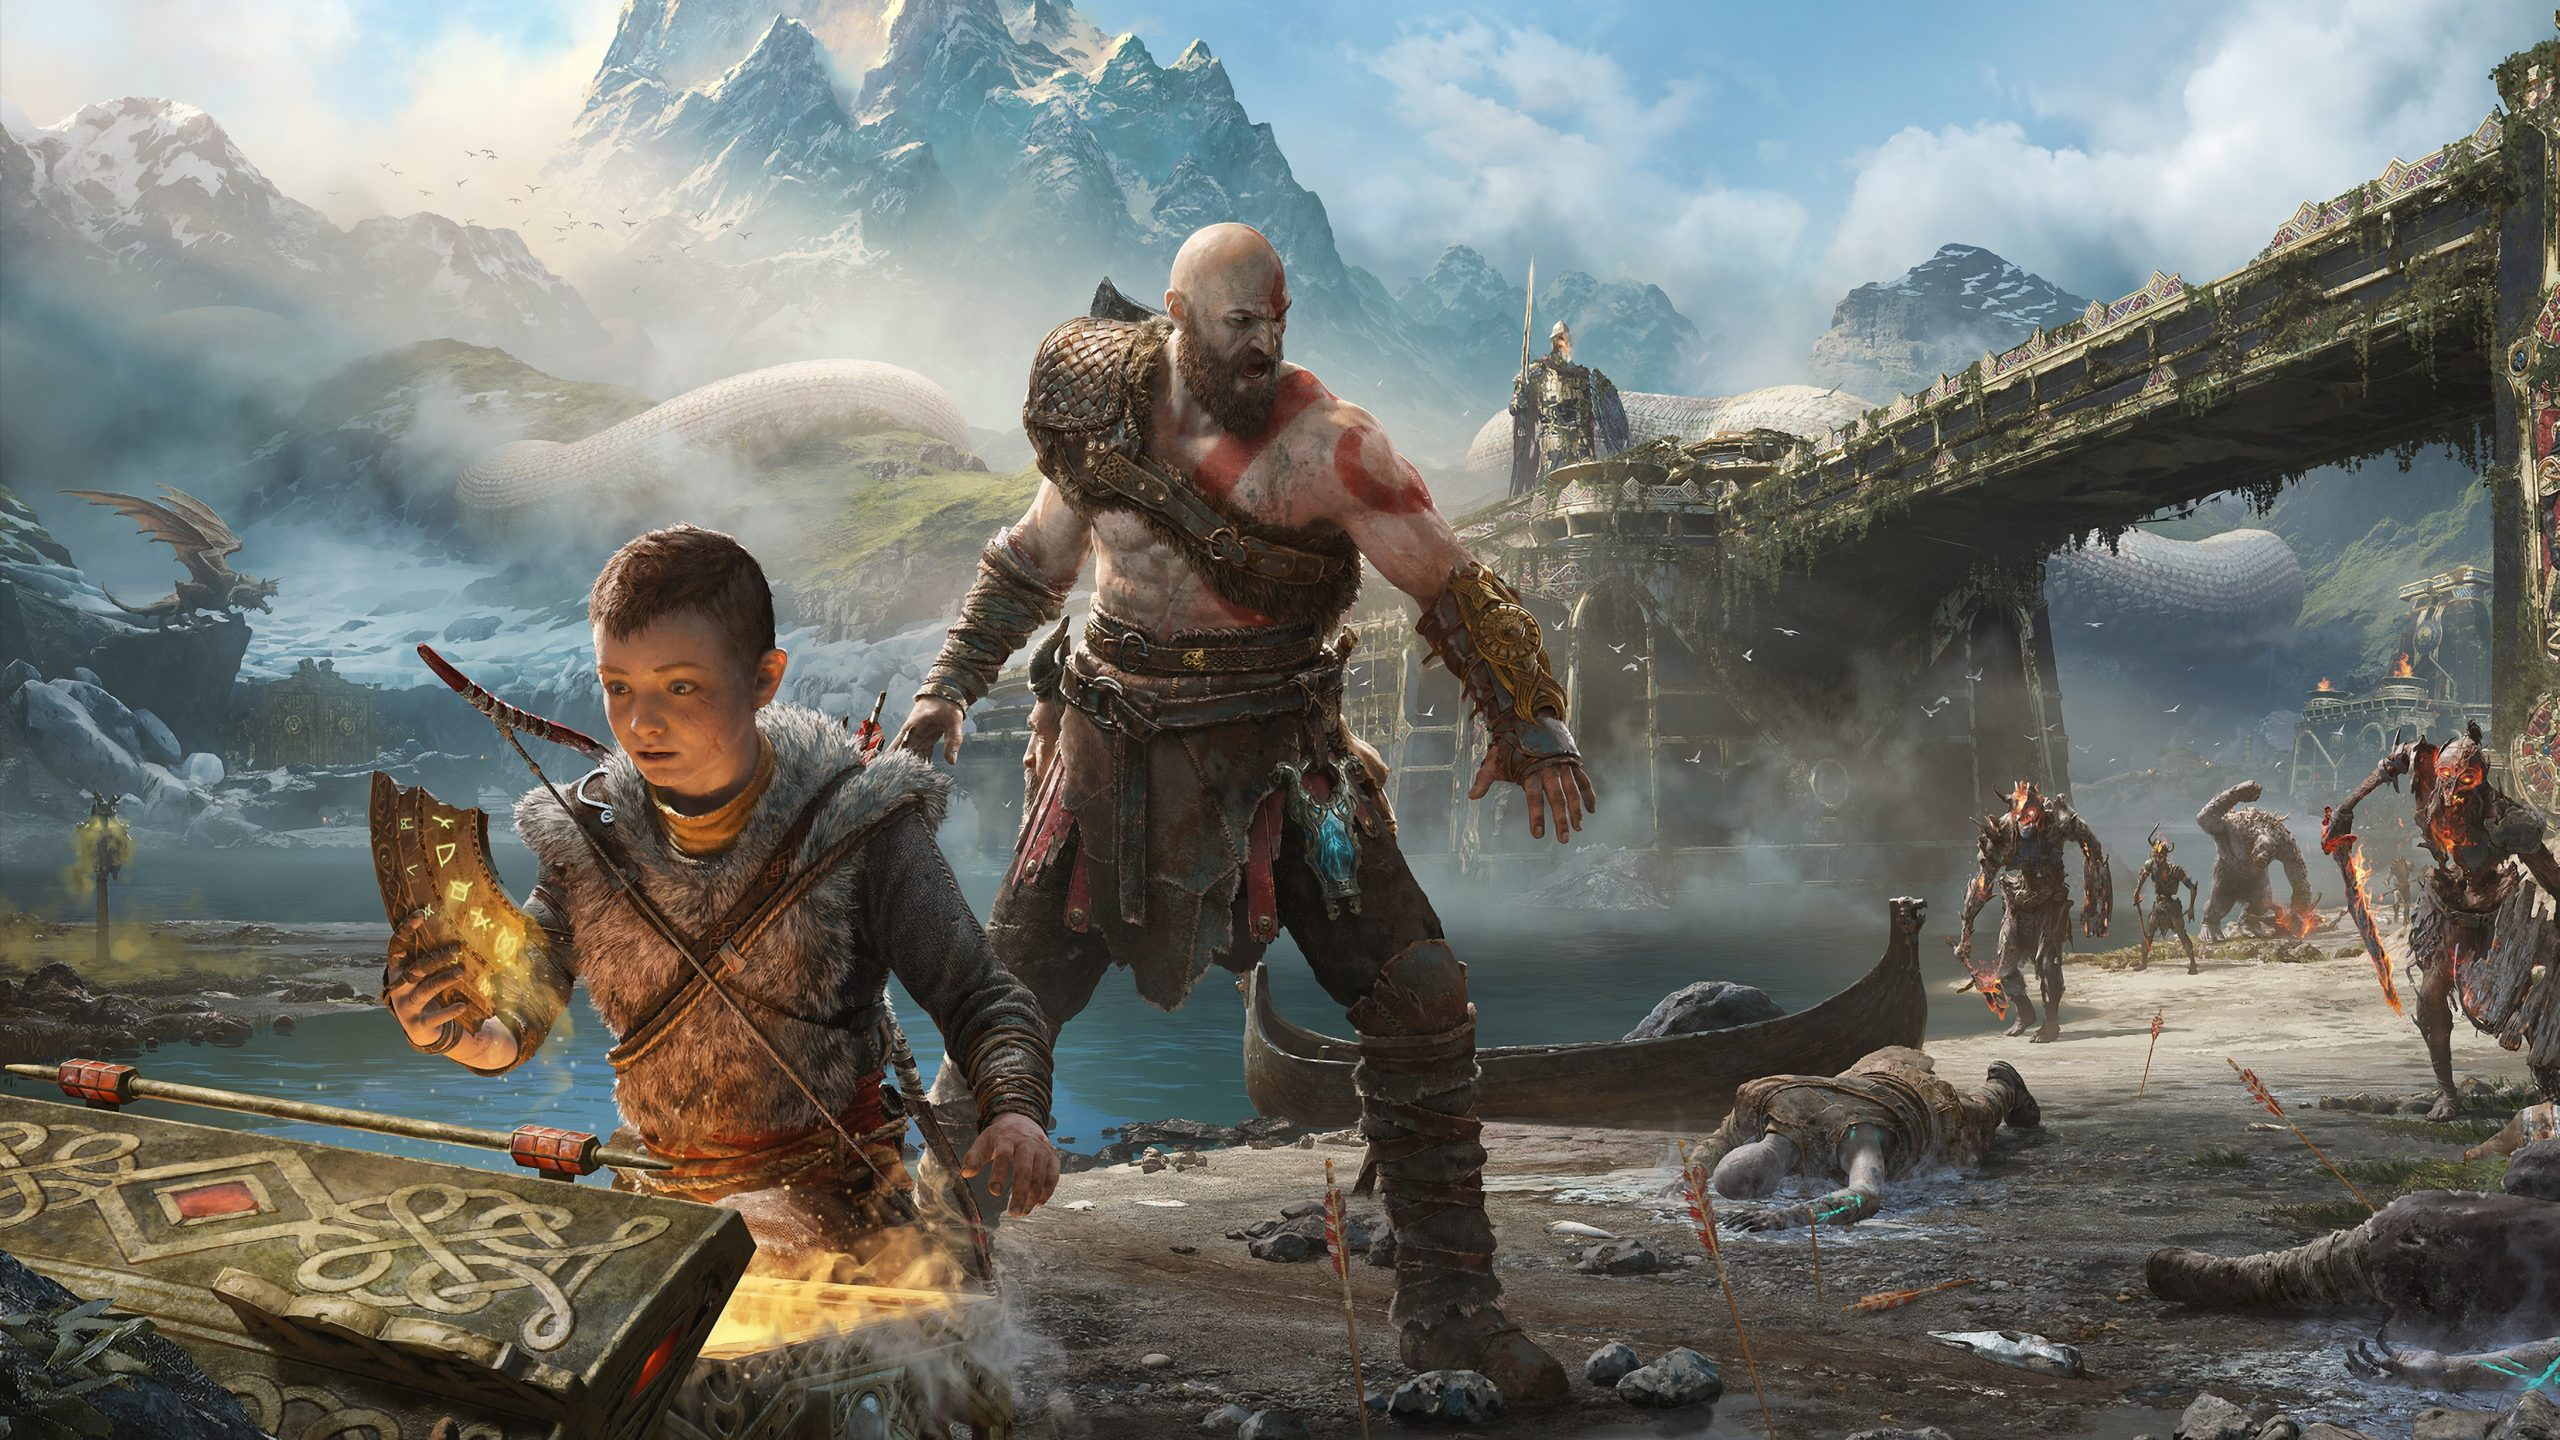 God of War 2 Announcement at Sony PlayStation 5 Event